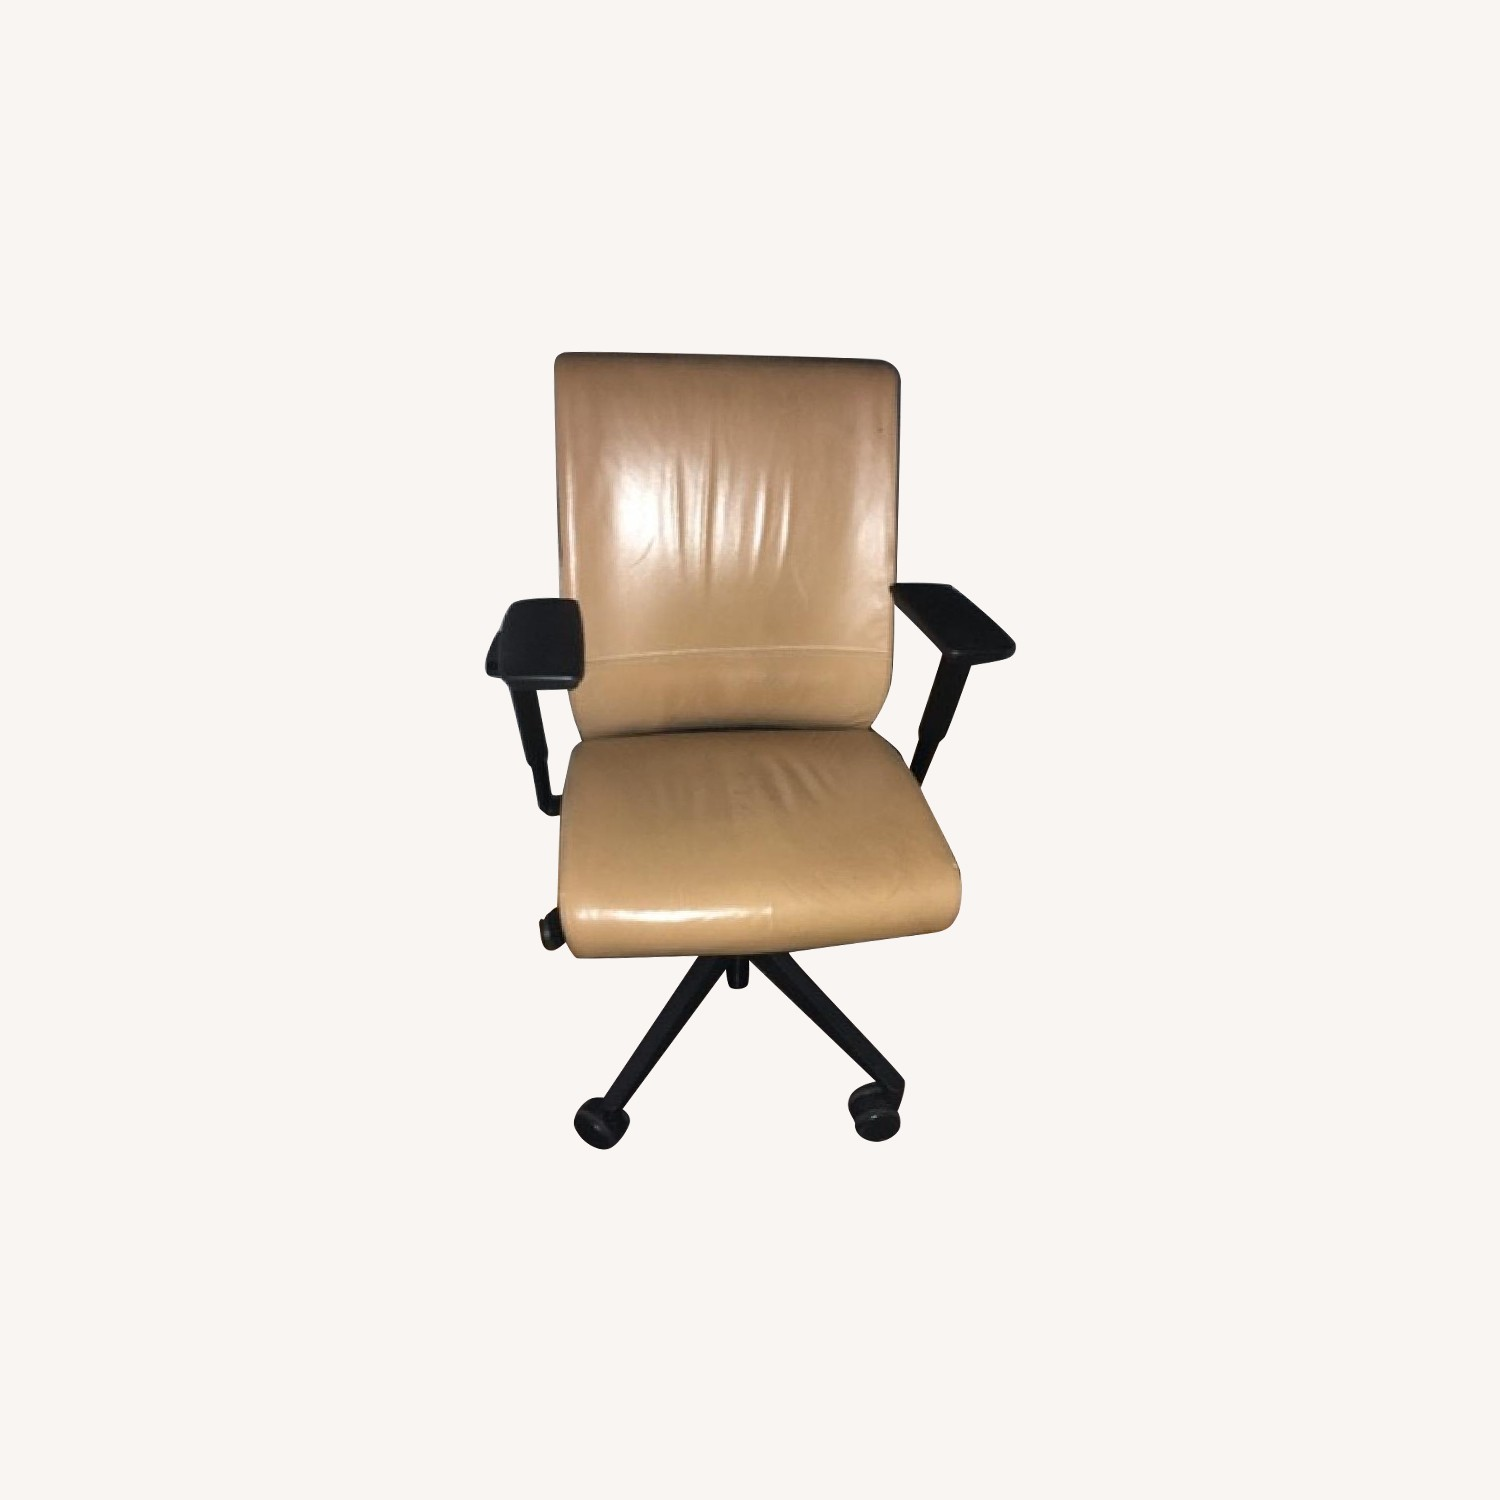 Steelcase Camel Faux Leather Office Chair w/ Lumbar Support